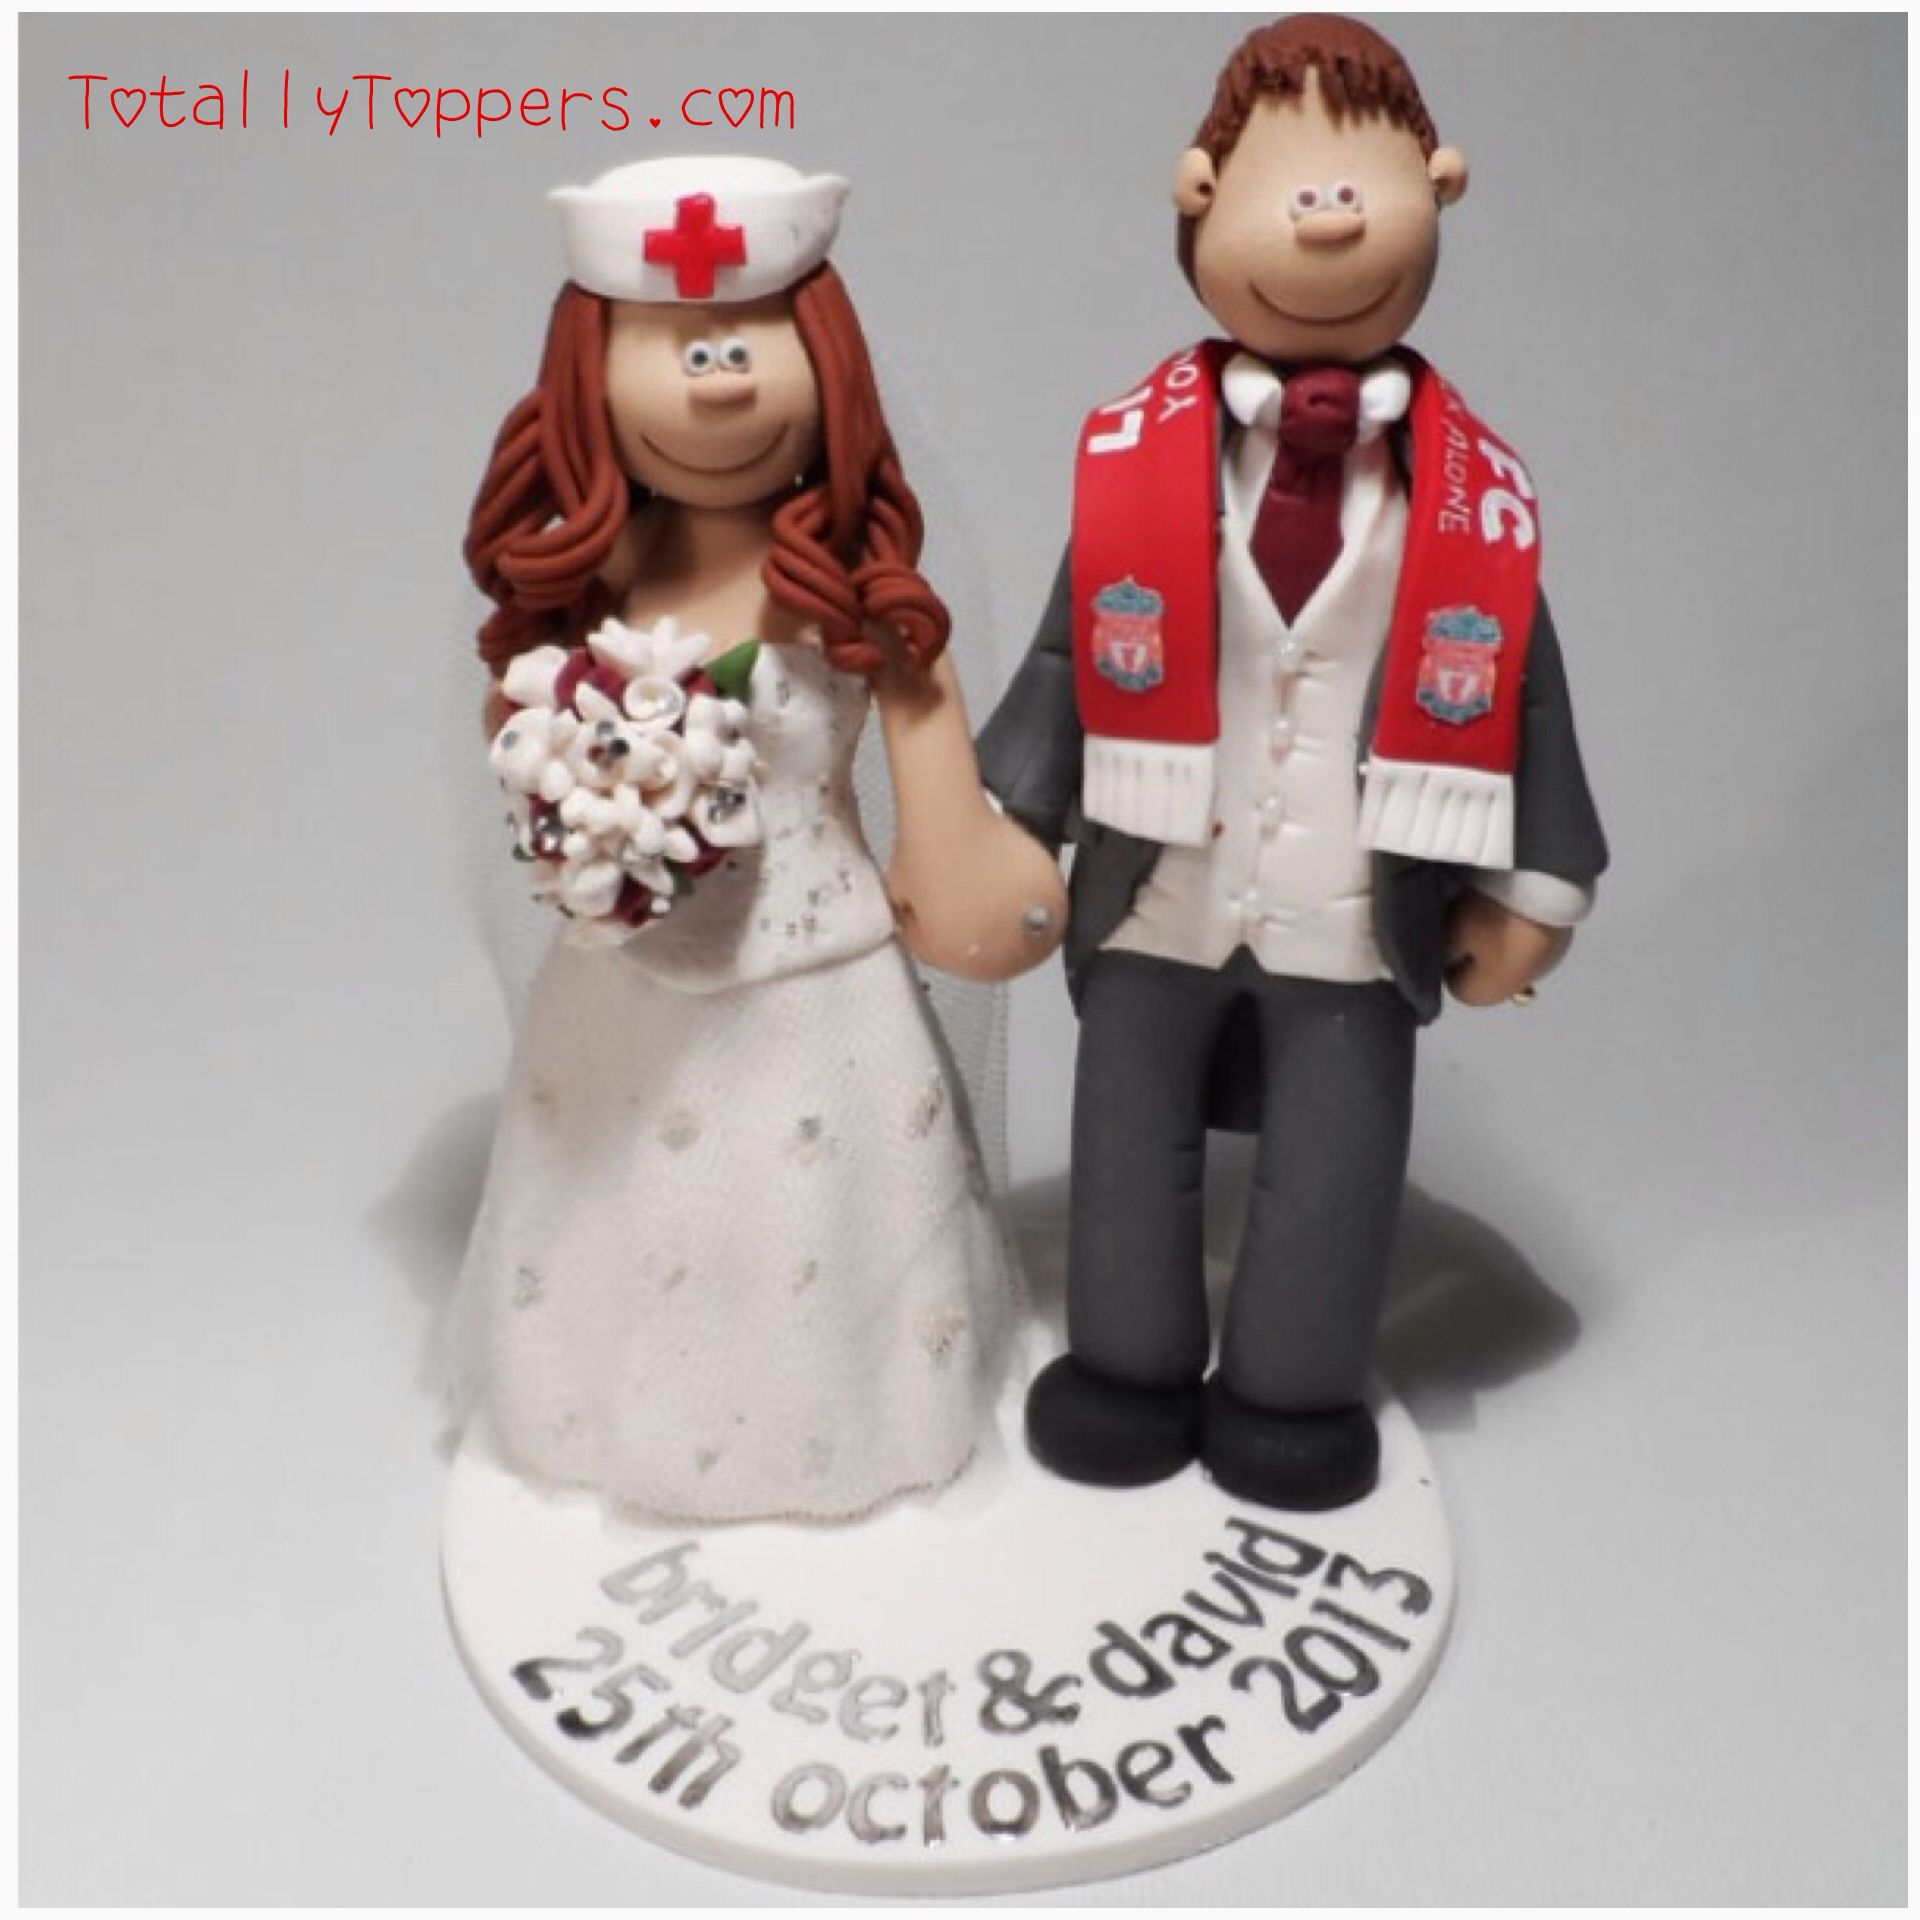 A Nurse Bride And Liverpool Football Club Groom Wedding Cake Topper Totallytoppers